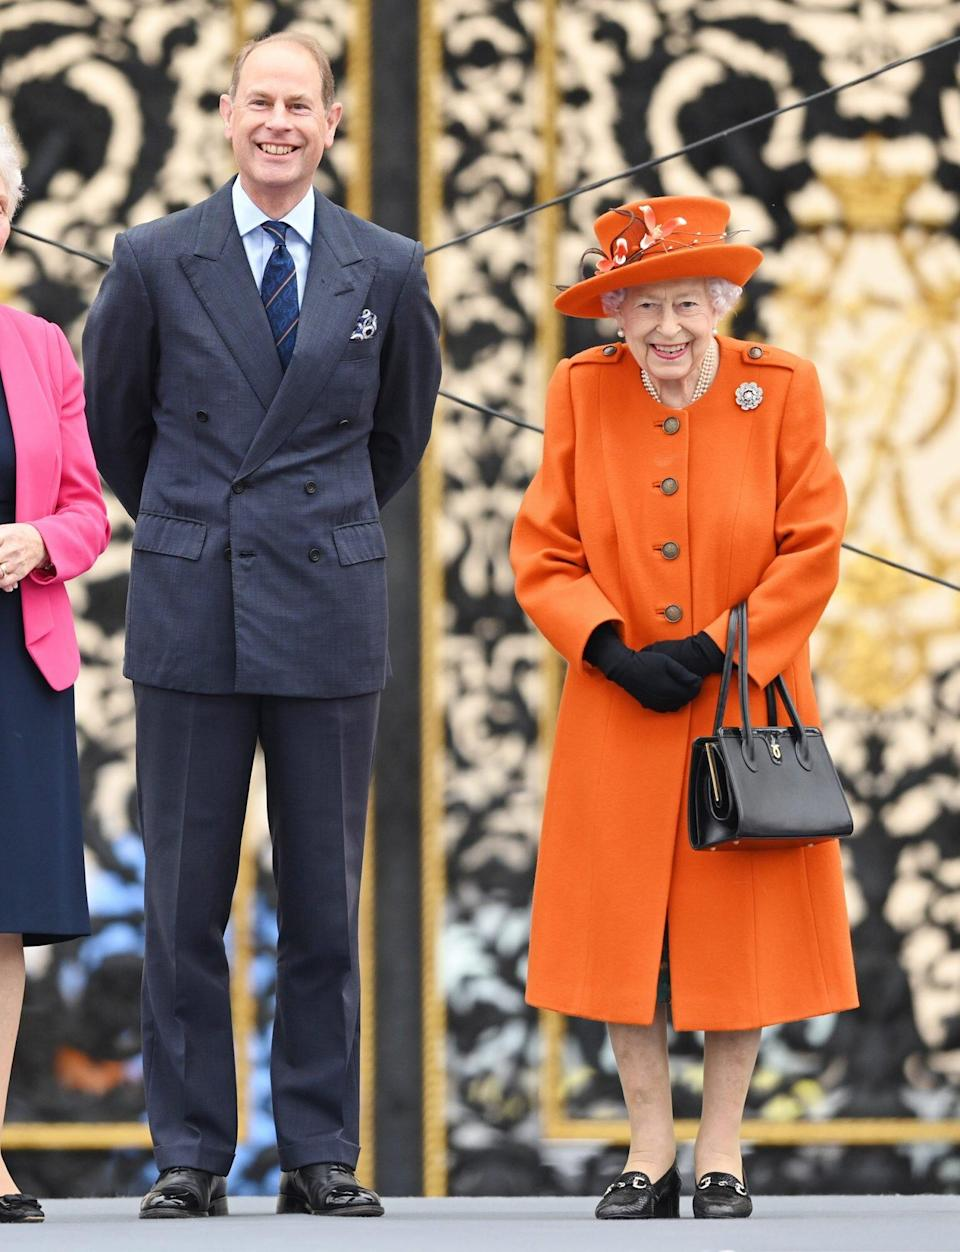 Prince Edward, Earl of Wessex and Queen Elizabeth II officially launch the Birmingham 2022 Queen's Baton Relay for the XXII Commonwealth Games at Buckingham Palace on October 07, 2021 in London, England